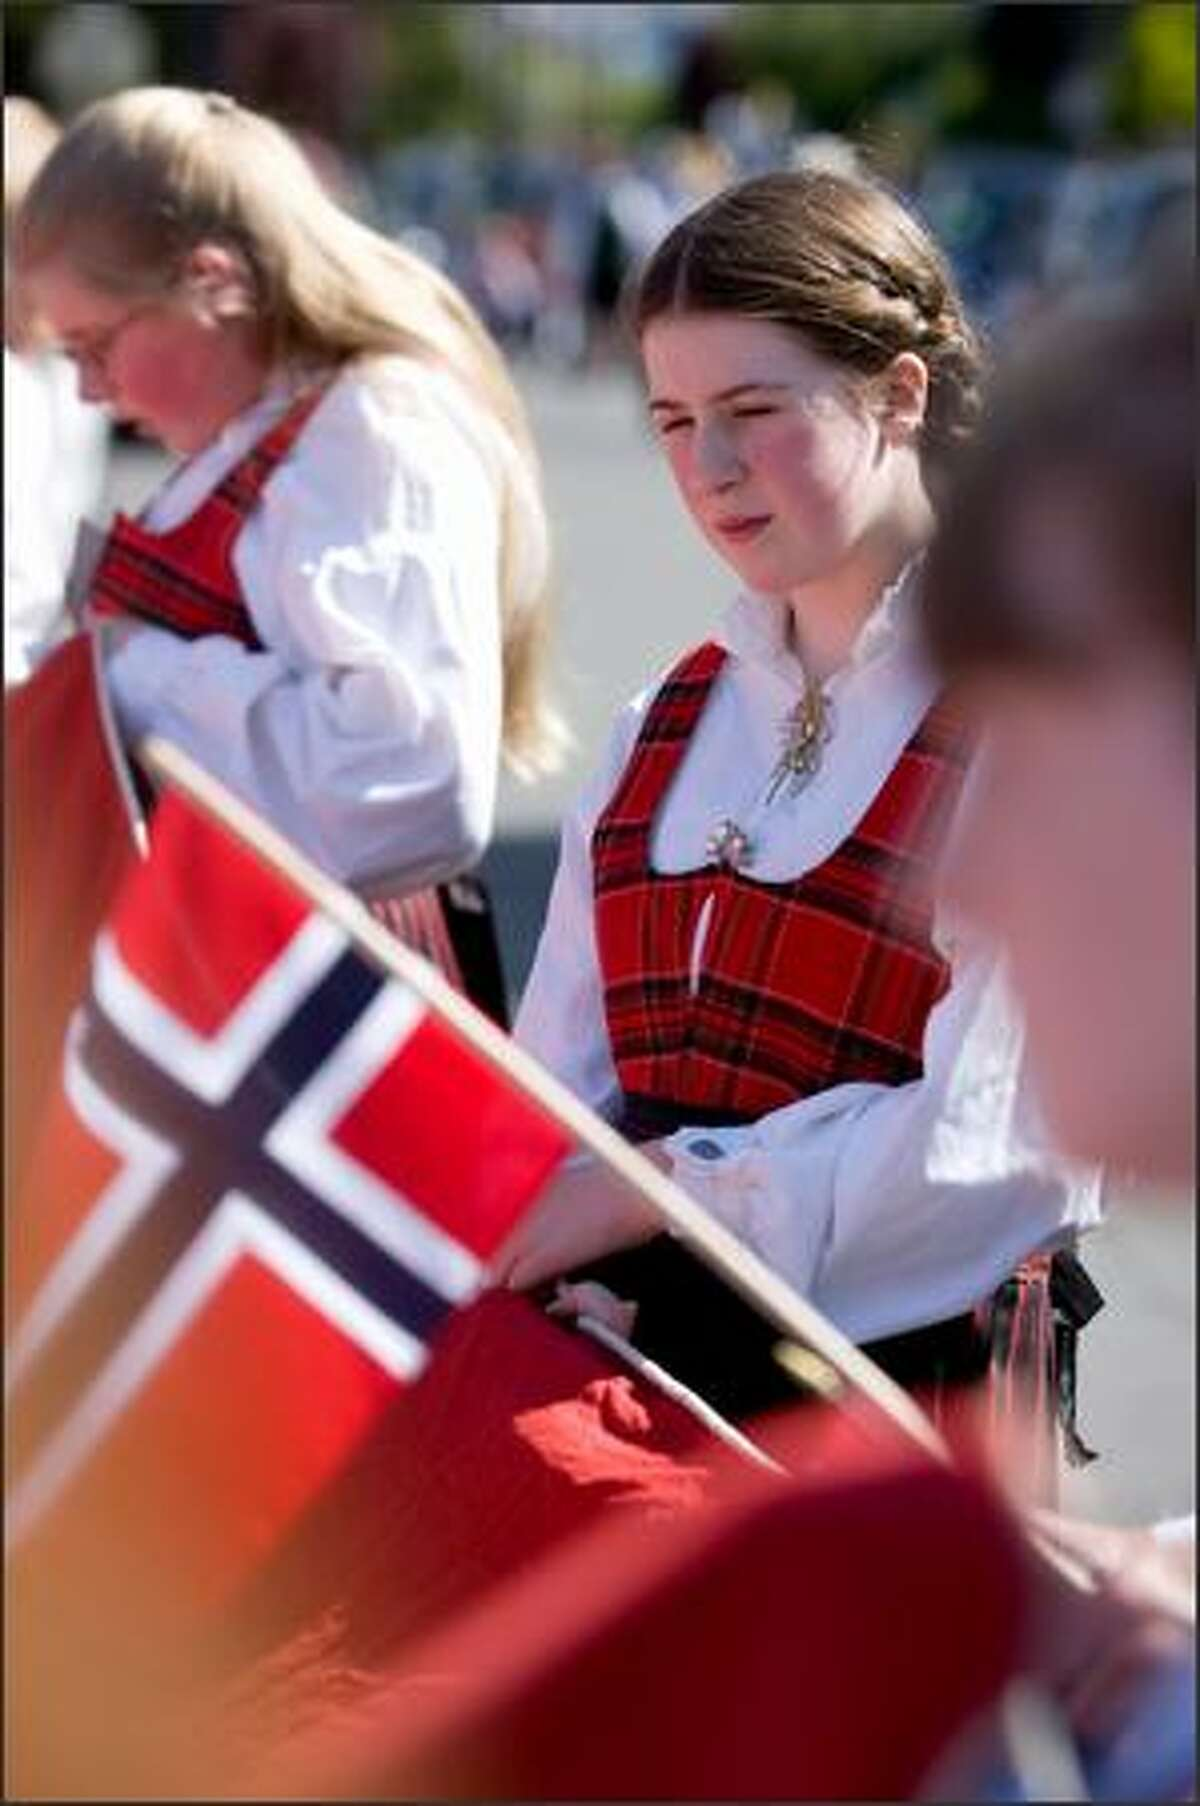 Anna Ripley, 12, relaxes alongside sister Tera Jane, 13, left, before the start of the Norwegian Constitution Day parade in Ballard.